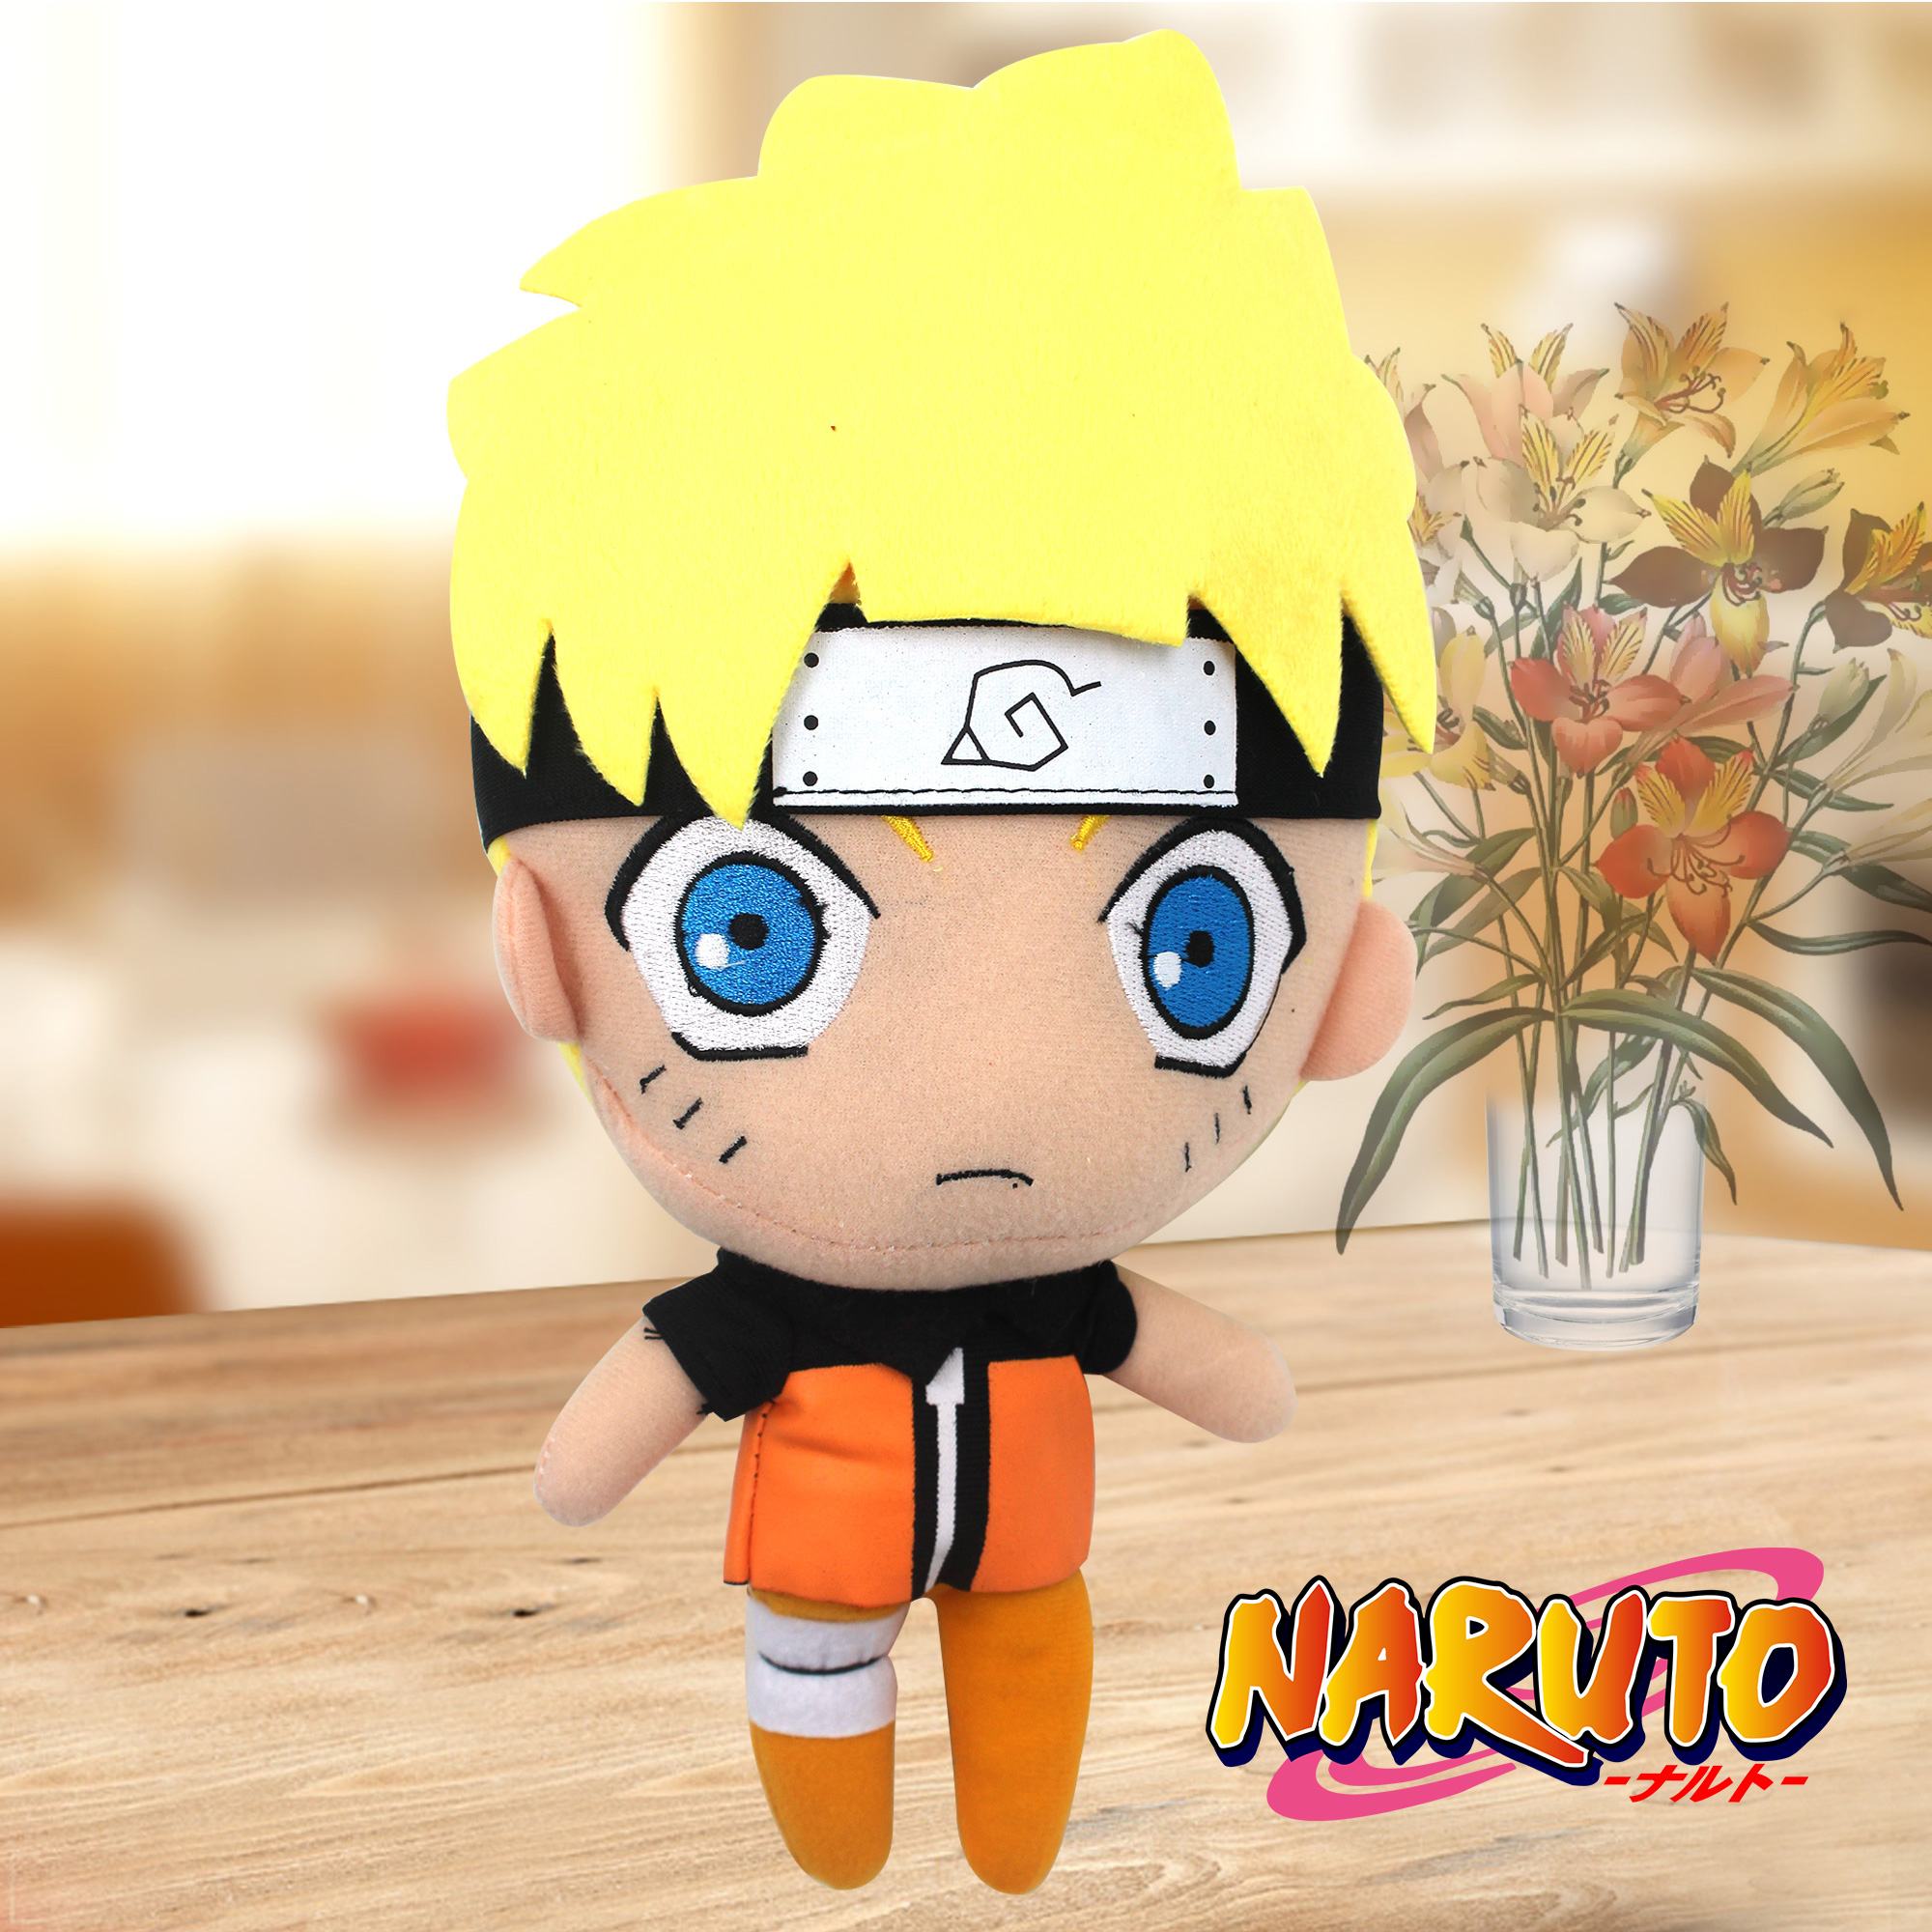 OHCOMICS NARUTO Sasuke Naruto 70CM Stuffed Plush Toys PP Cotton Dolls Kawaii Kid Hot Hugging Cushion Anime Costume Gifts Decor